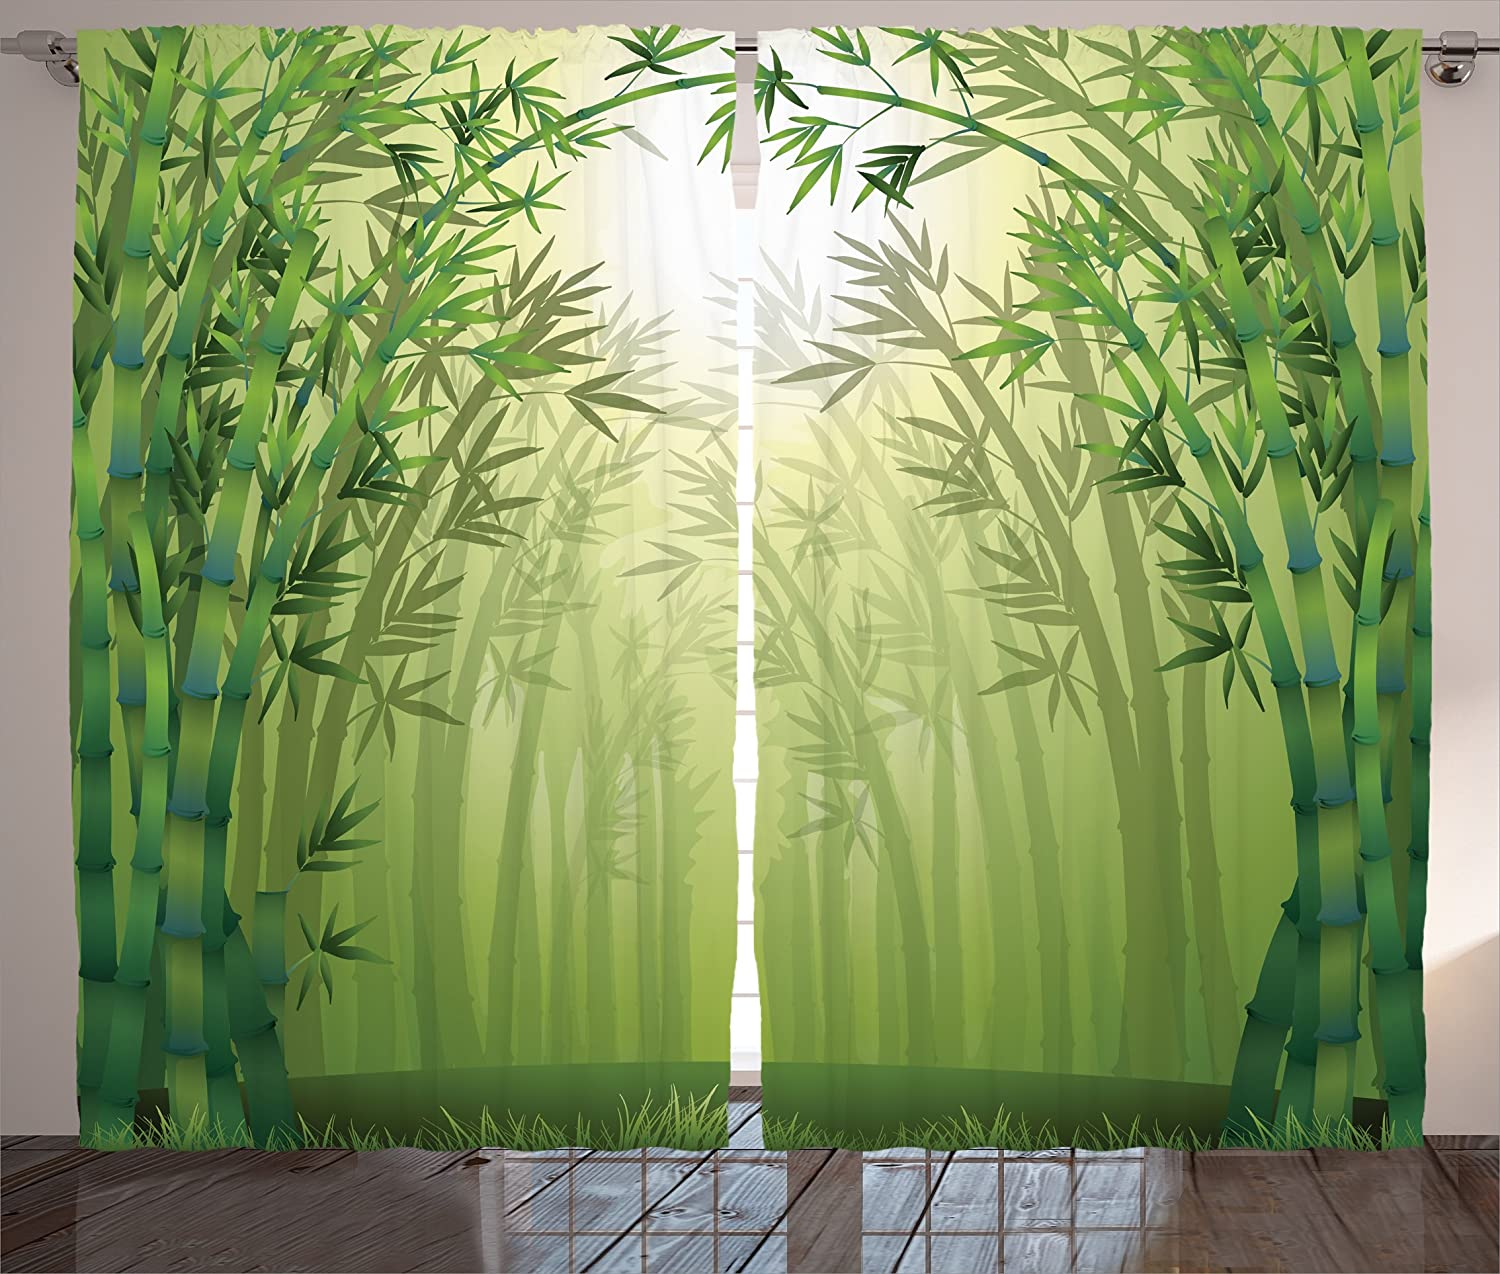 Ambesonne Olive Green Curtains Bamboo Decor, Illustration of Bamboo Trees in Rain Forest Far Eastern Wildlife Tropical Nature, Living Room Bedroom Decor, 2 Panel Set, 108 W X 84 L Inches, Green